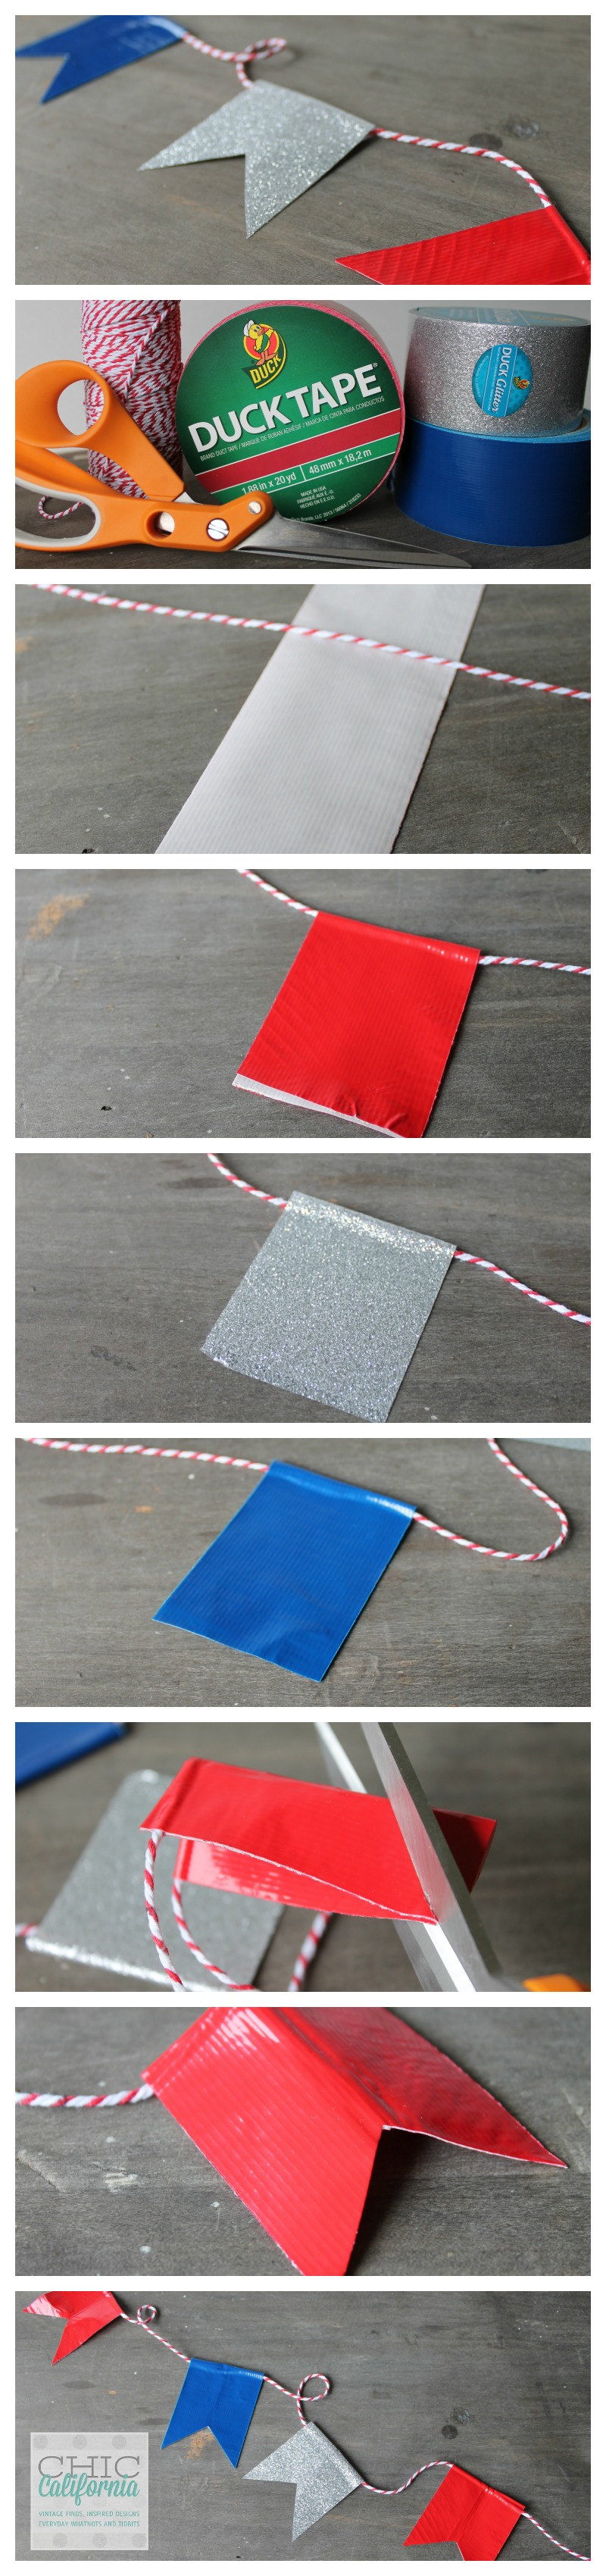 Inspired design monday duck tape 4th of july banner for Super easy duct tape crafts